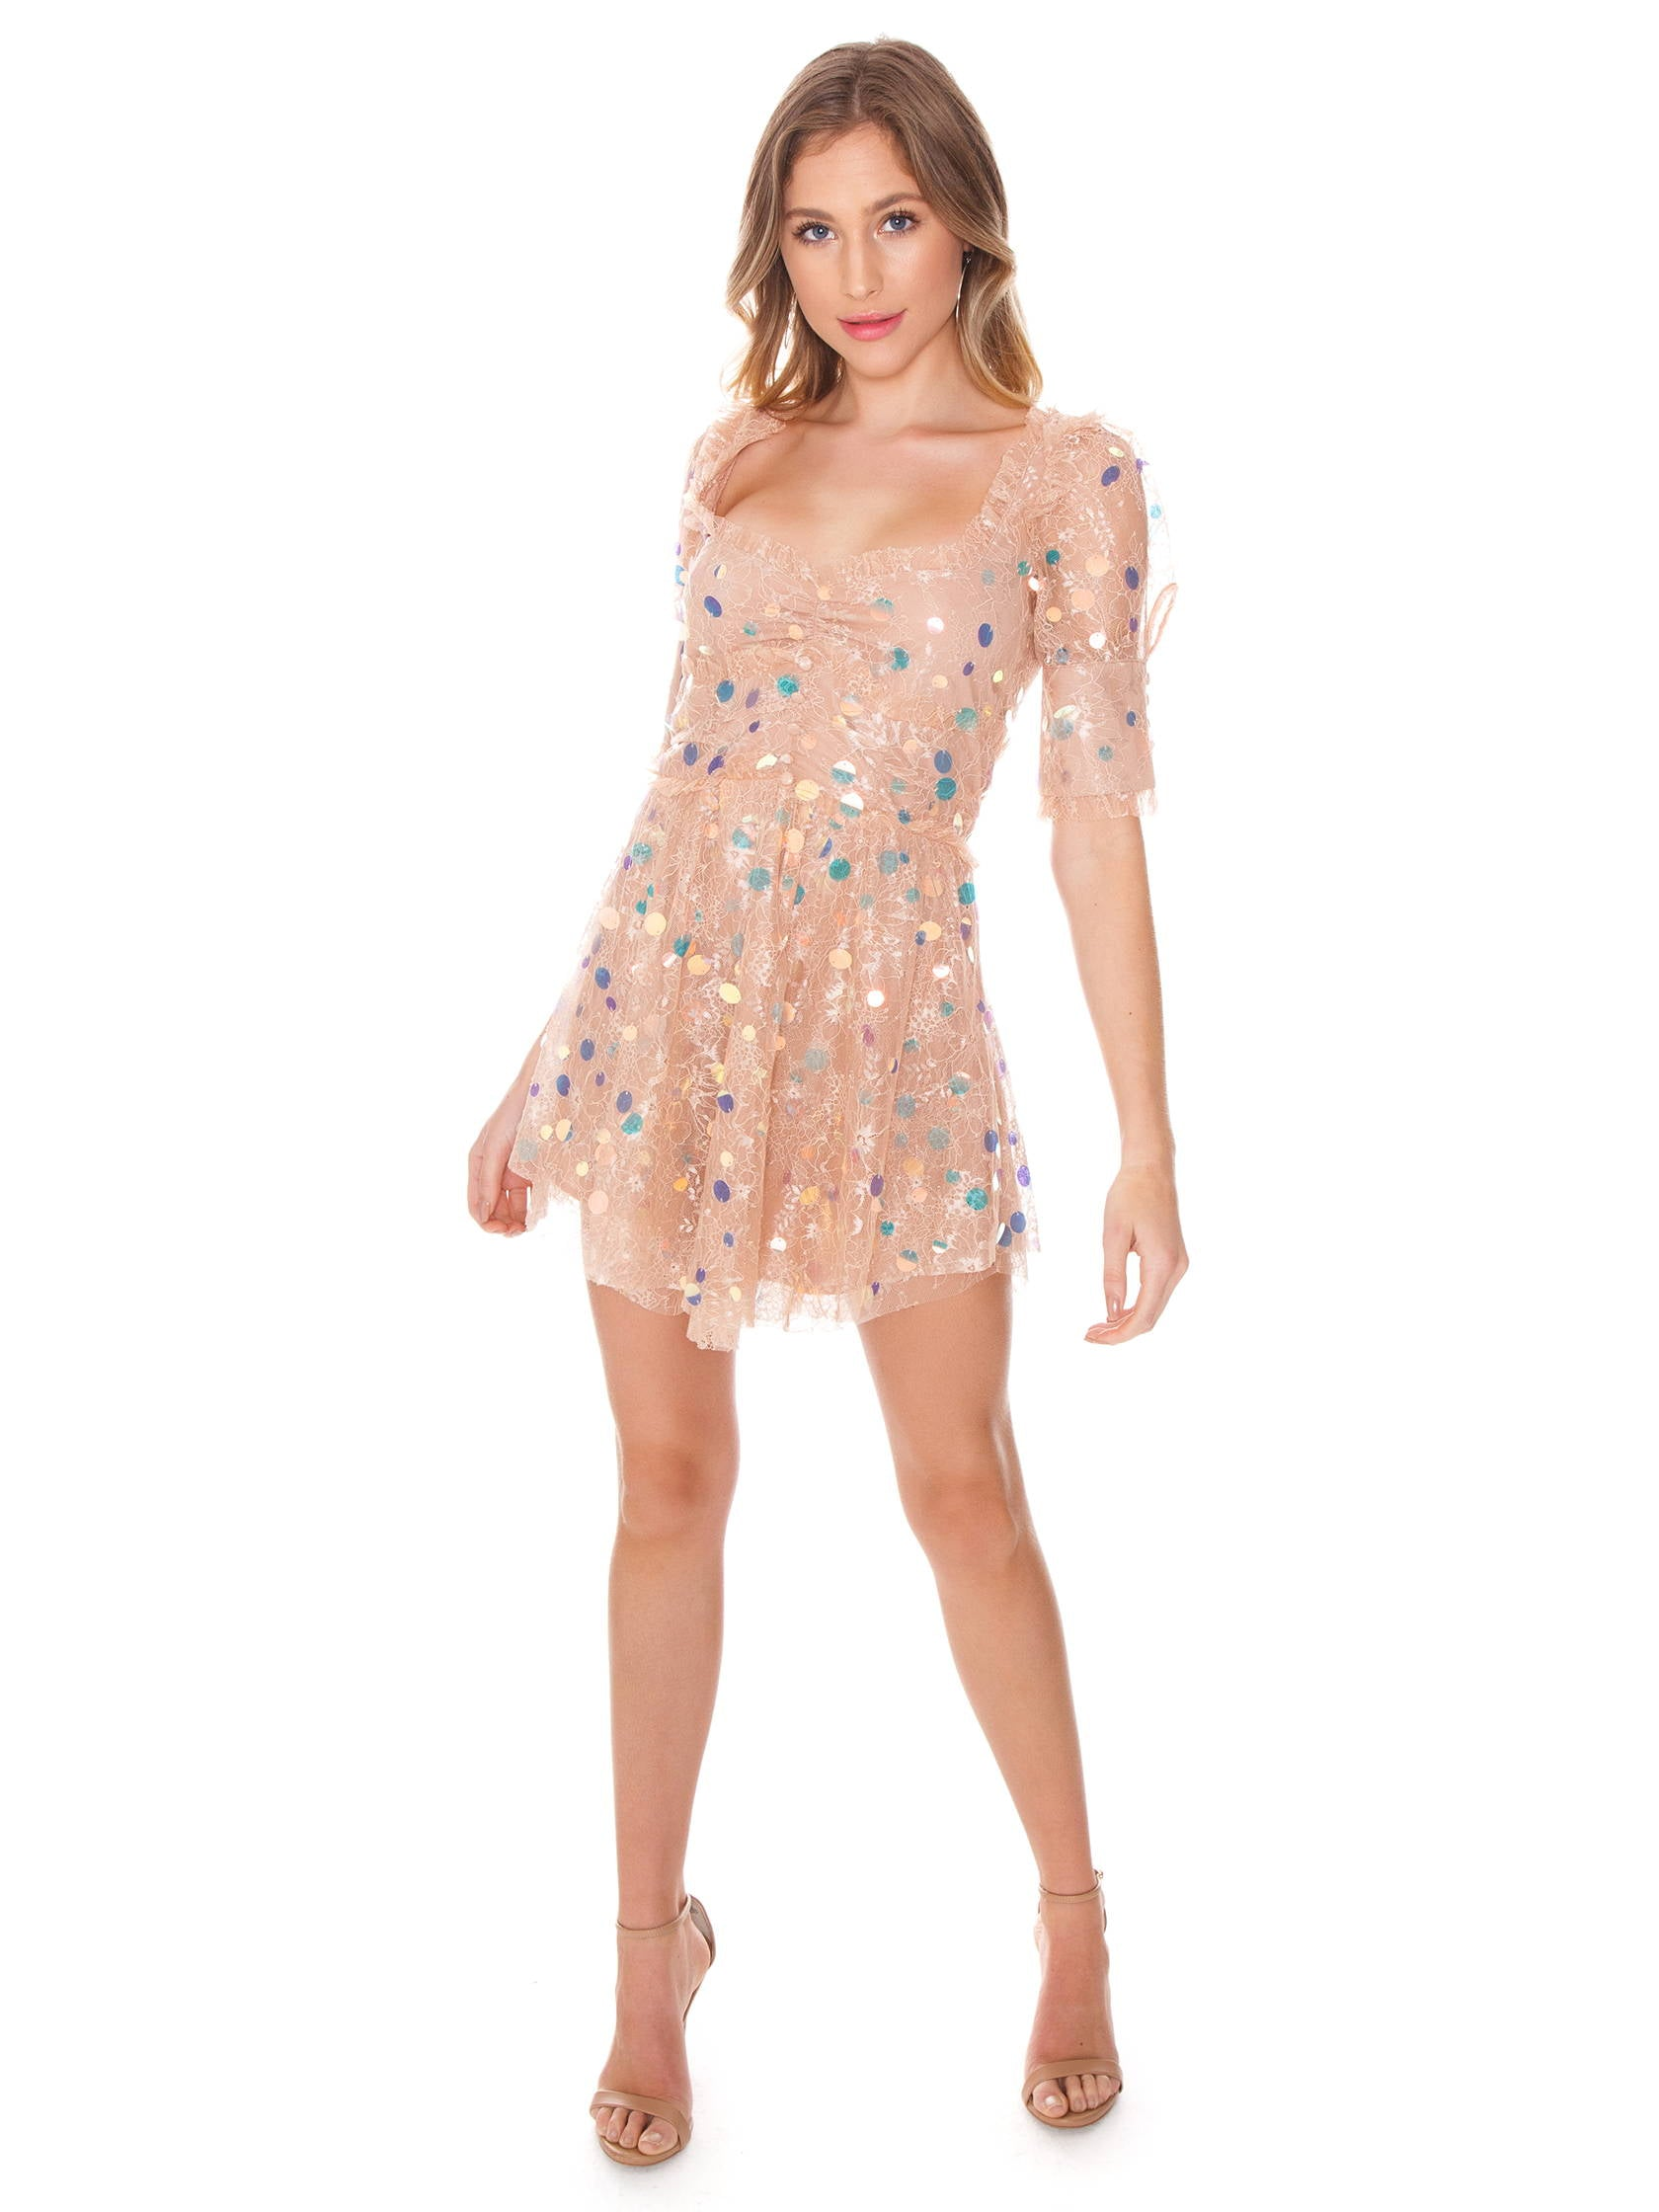 695cbc19eb Girl outfit in a dress rental from For Love   Lemons called Ace Mini Dress